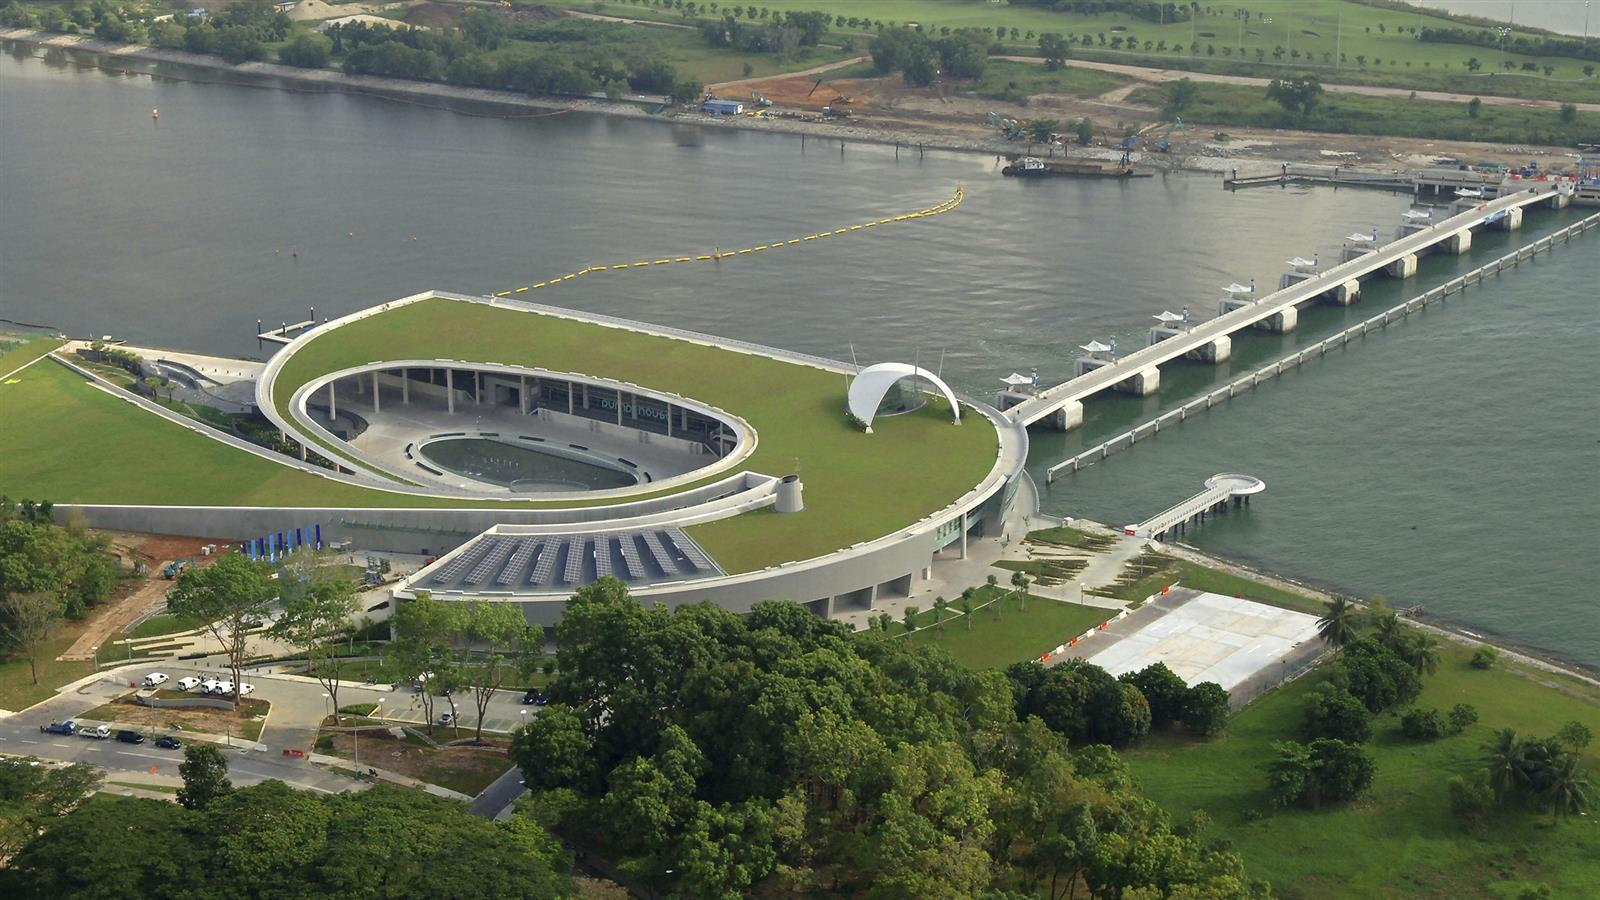 Marina Barrage overview